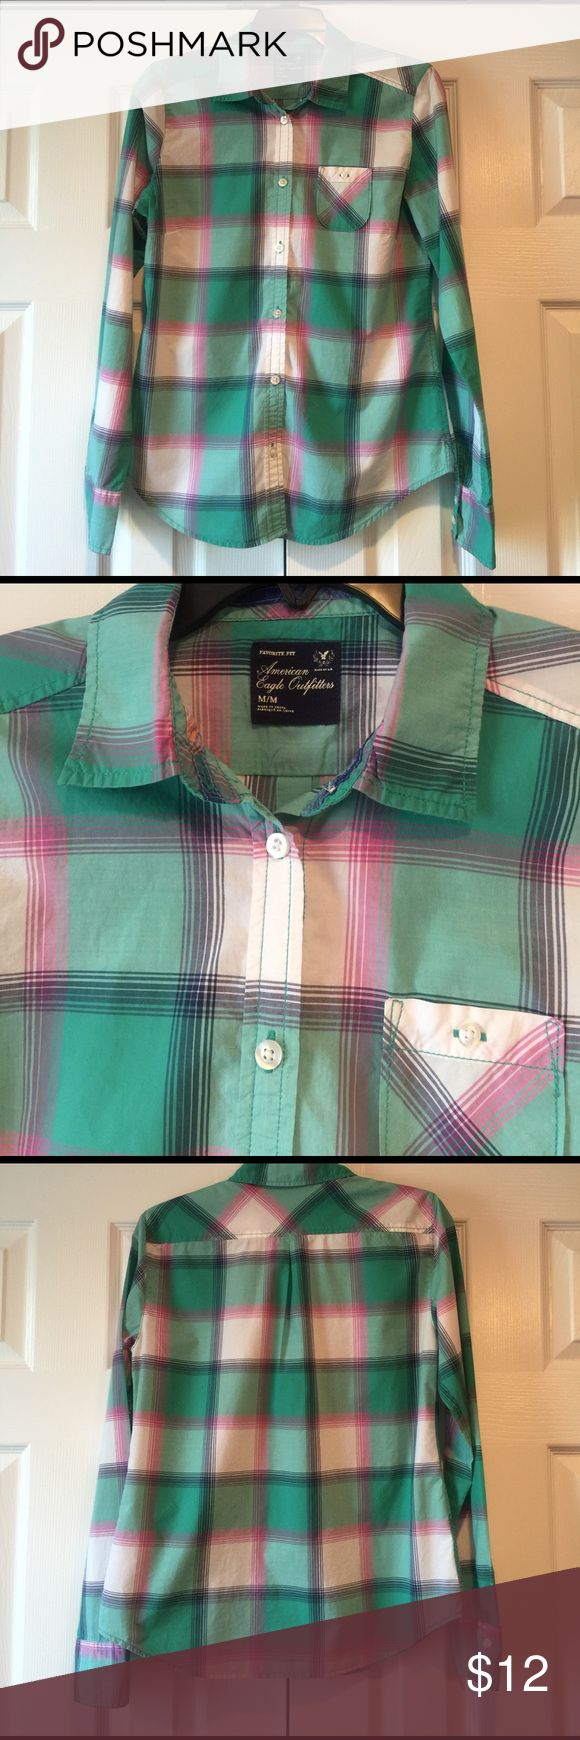 American Eagle Plaid shirt AE Outfitters plaid shirt-not flannel. 100% cotton. Great for cool spring days. Great condition and from smoke and pet free home. American Eagle Outfitters Tops Button Down Shirts